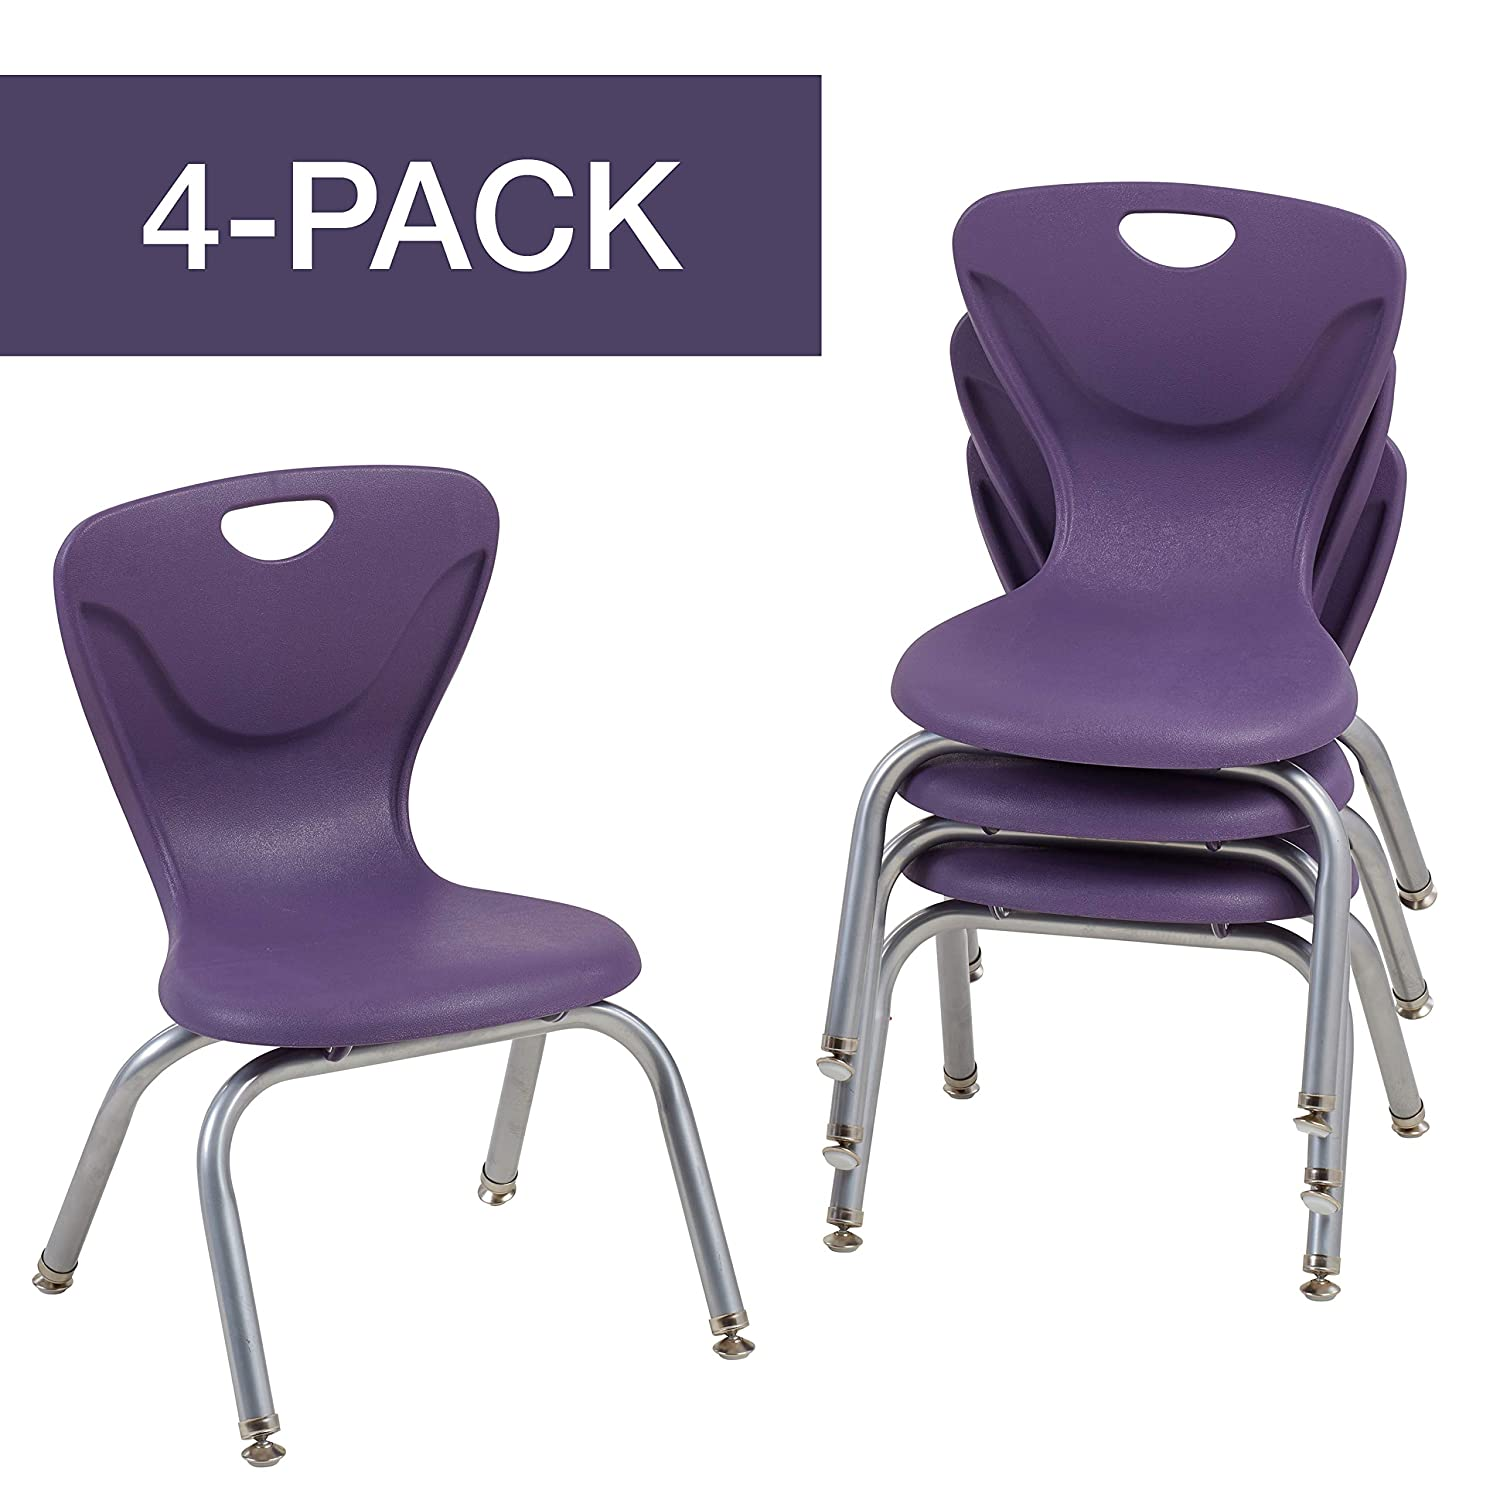 "FDP 12"" Contour School Stacking Student Chair, Ergonomic Molded Seat Shell with Chromed Steel Frame and Swivel Leg Glides; for in-Home Learning or Classroom - Eggplant (4-Pack)"